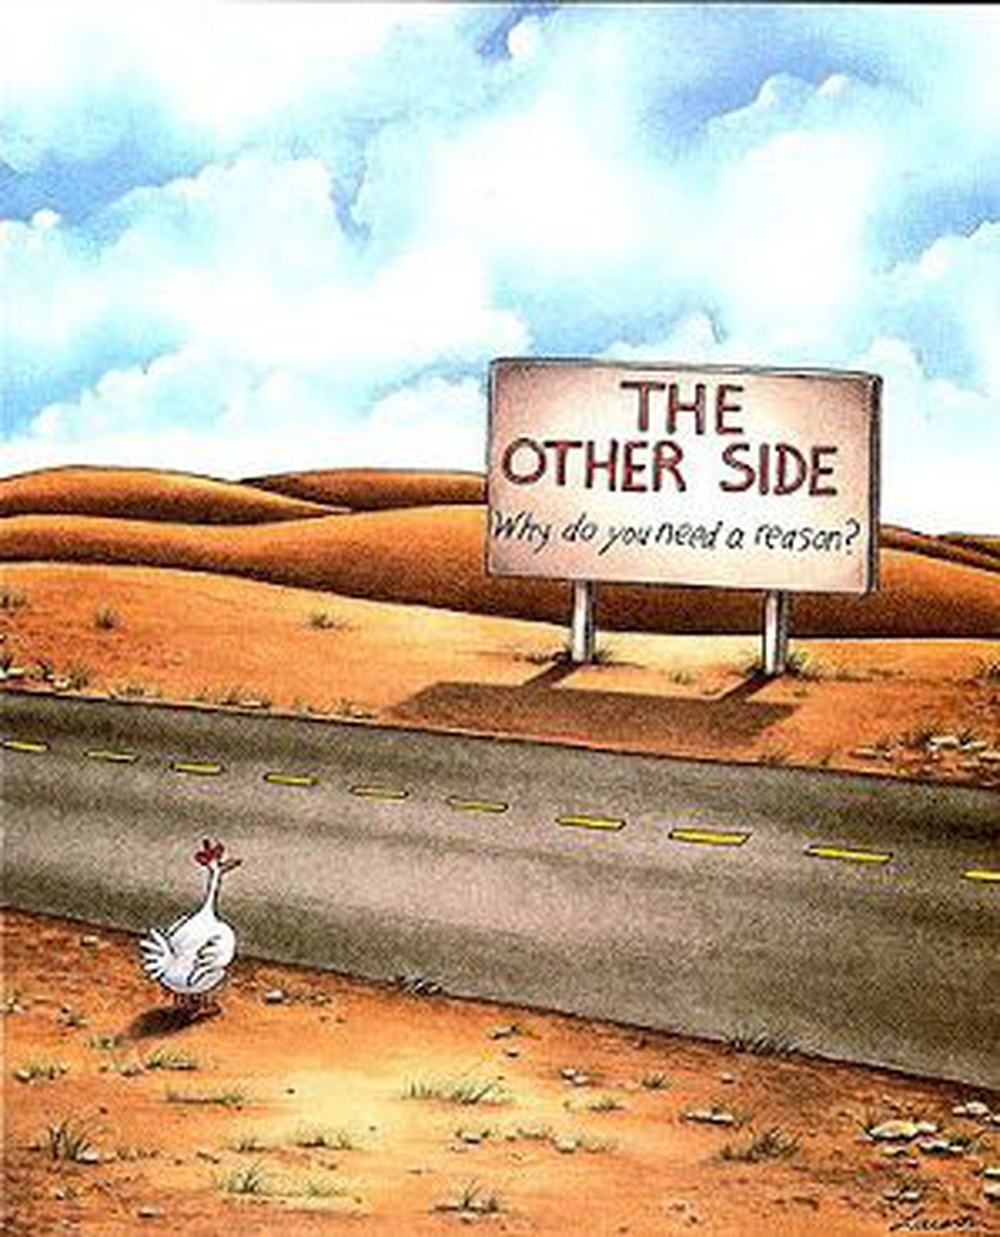 [A chicken crosses the road] It's all about people's perspective